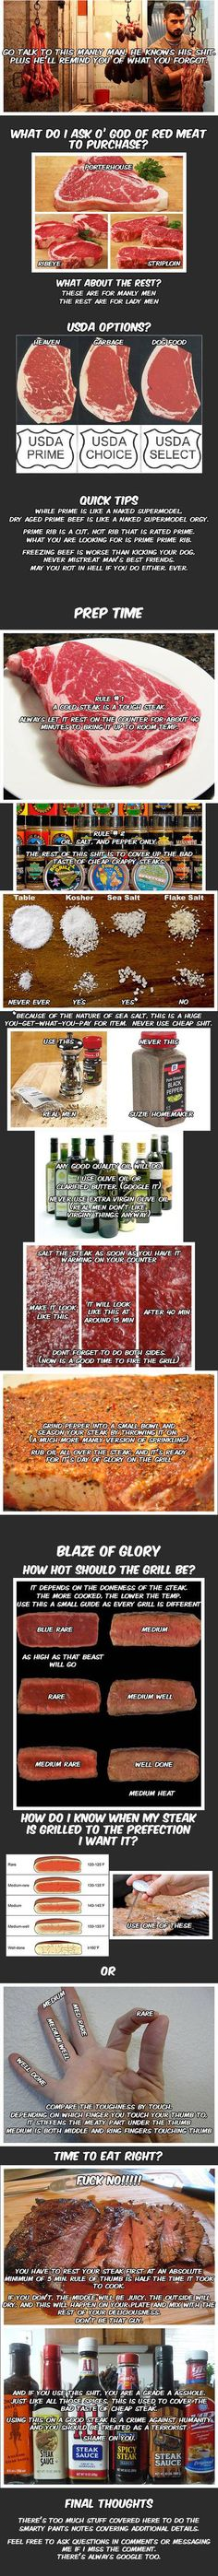 Every Warm Blooded, Whiskey Loving Male Should Know How To Properly Cook A Steak - Caveman Circus